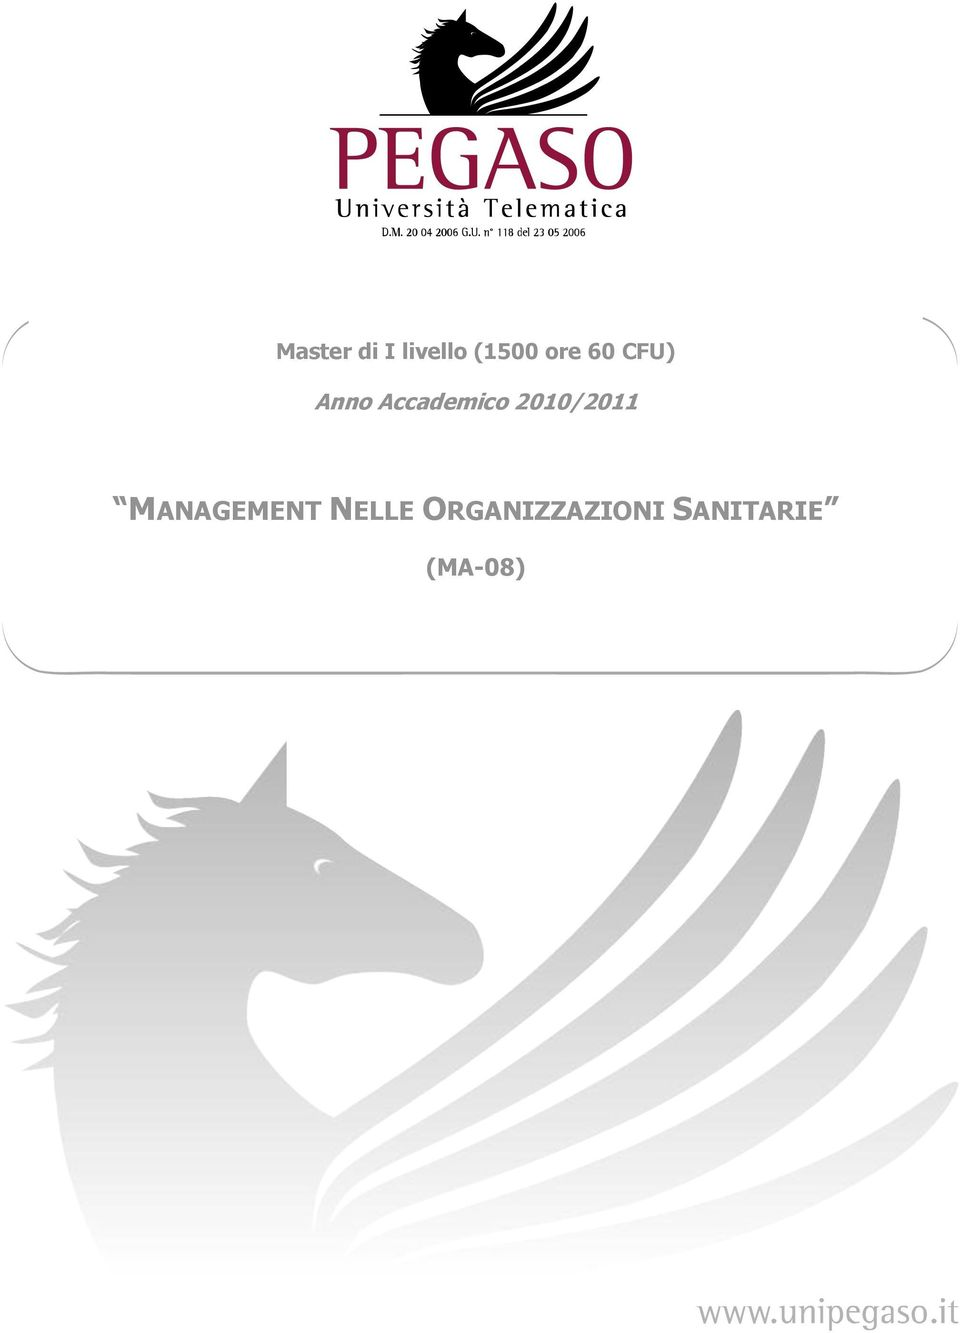 2010/2011 MANAGEMENT NELLE